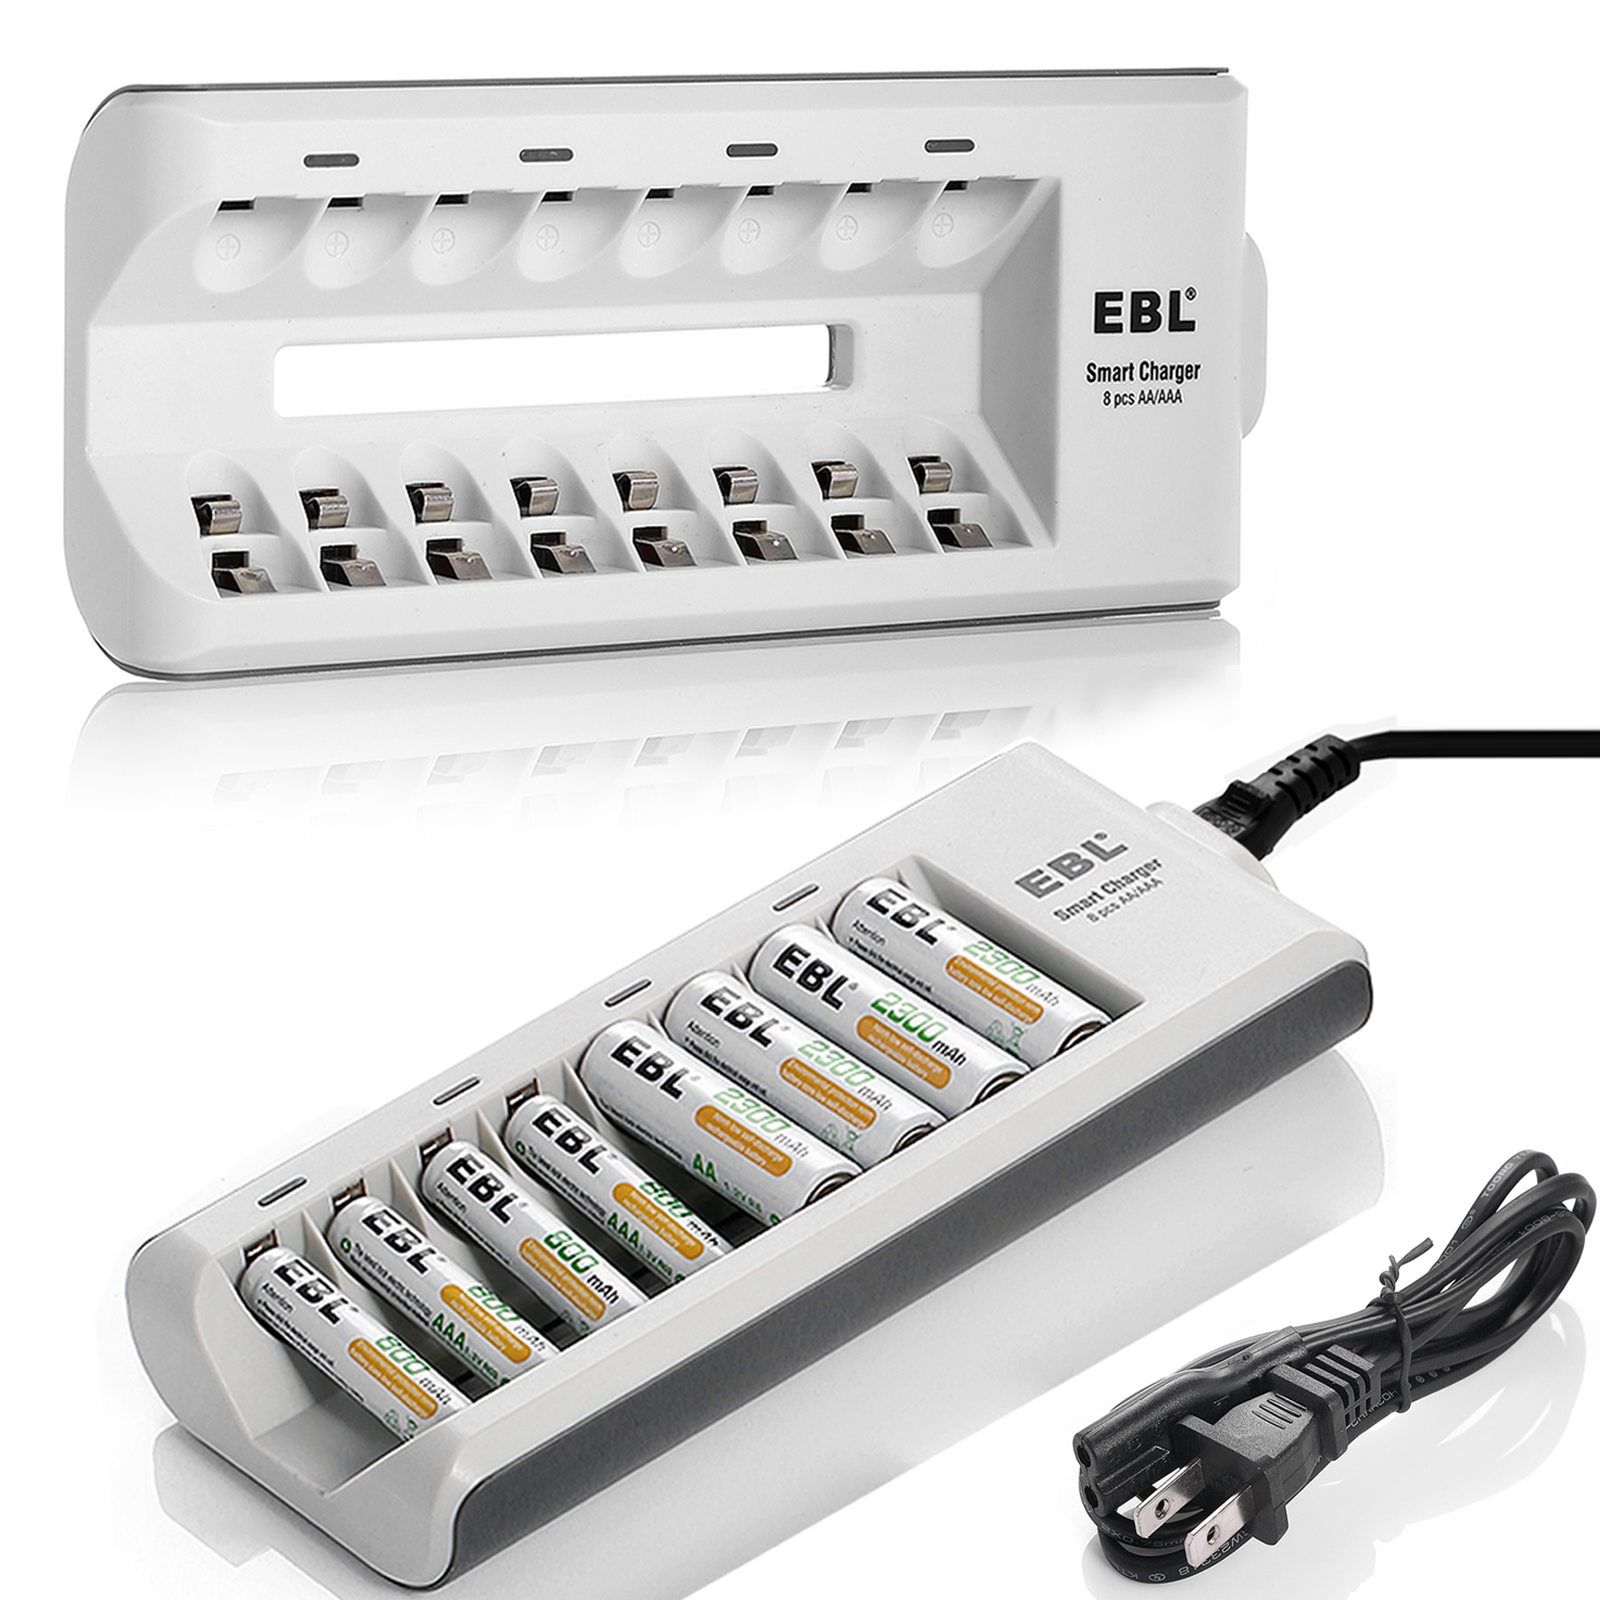 EBL 8 Slot Battery Charger For NiMH NiCD AA AAA Rechargeable Batteries